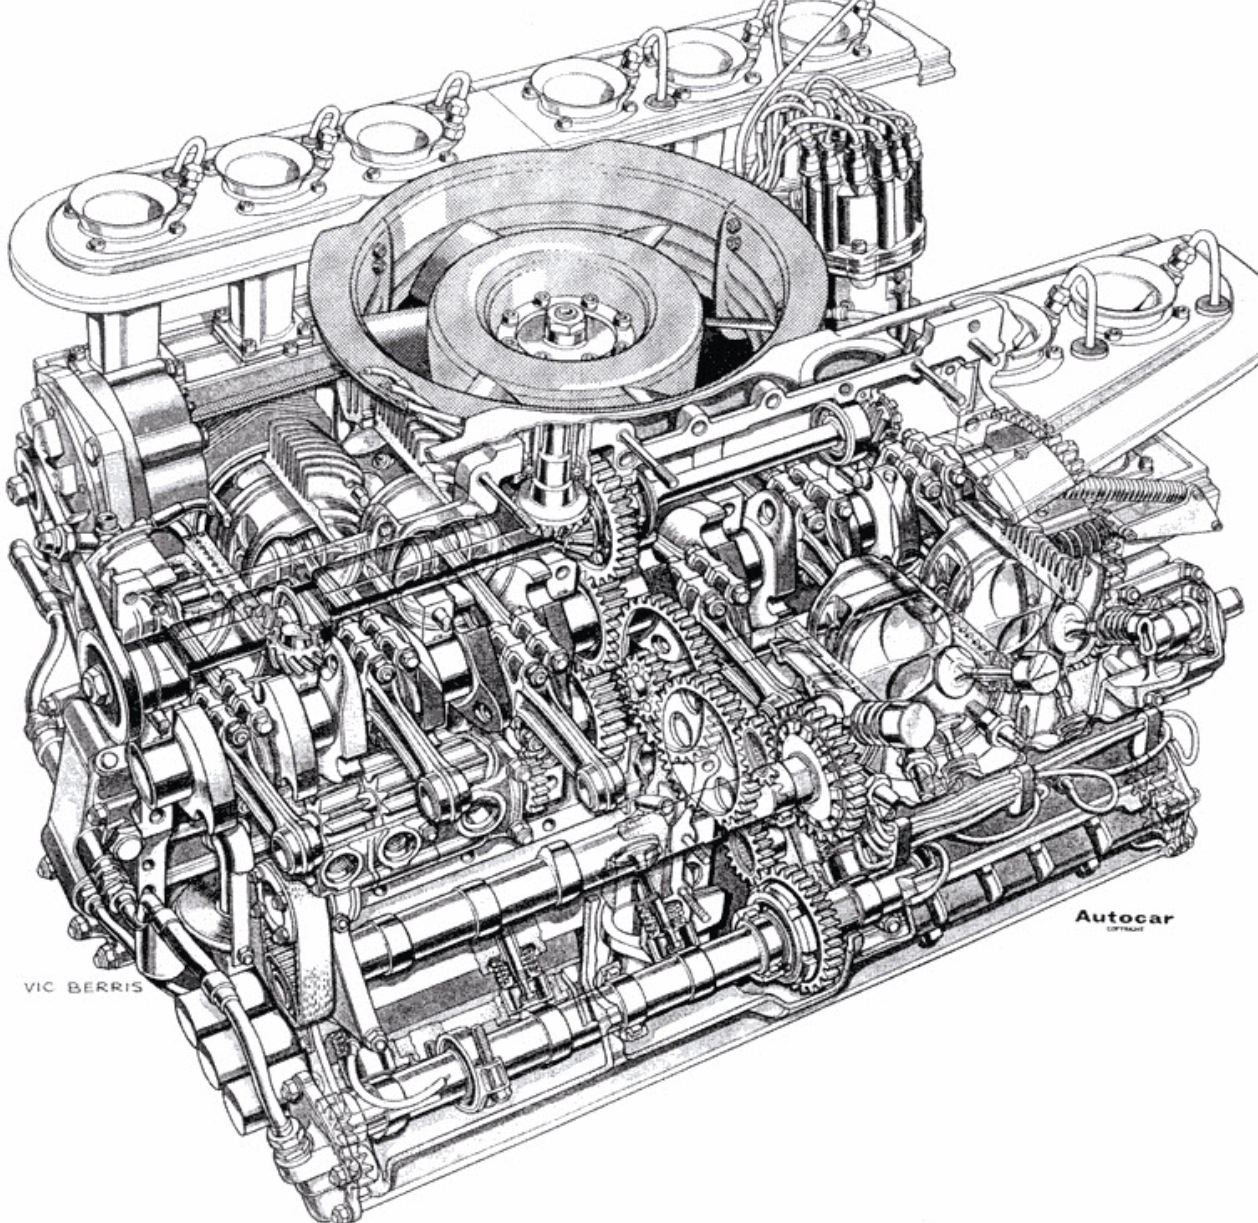 Porsche Engine Diagram Wiring Schemes 997 The Amazo Effect Cutaway Files 917 By Rh Theamazoeffect Blogspot Com 964 356